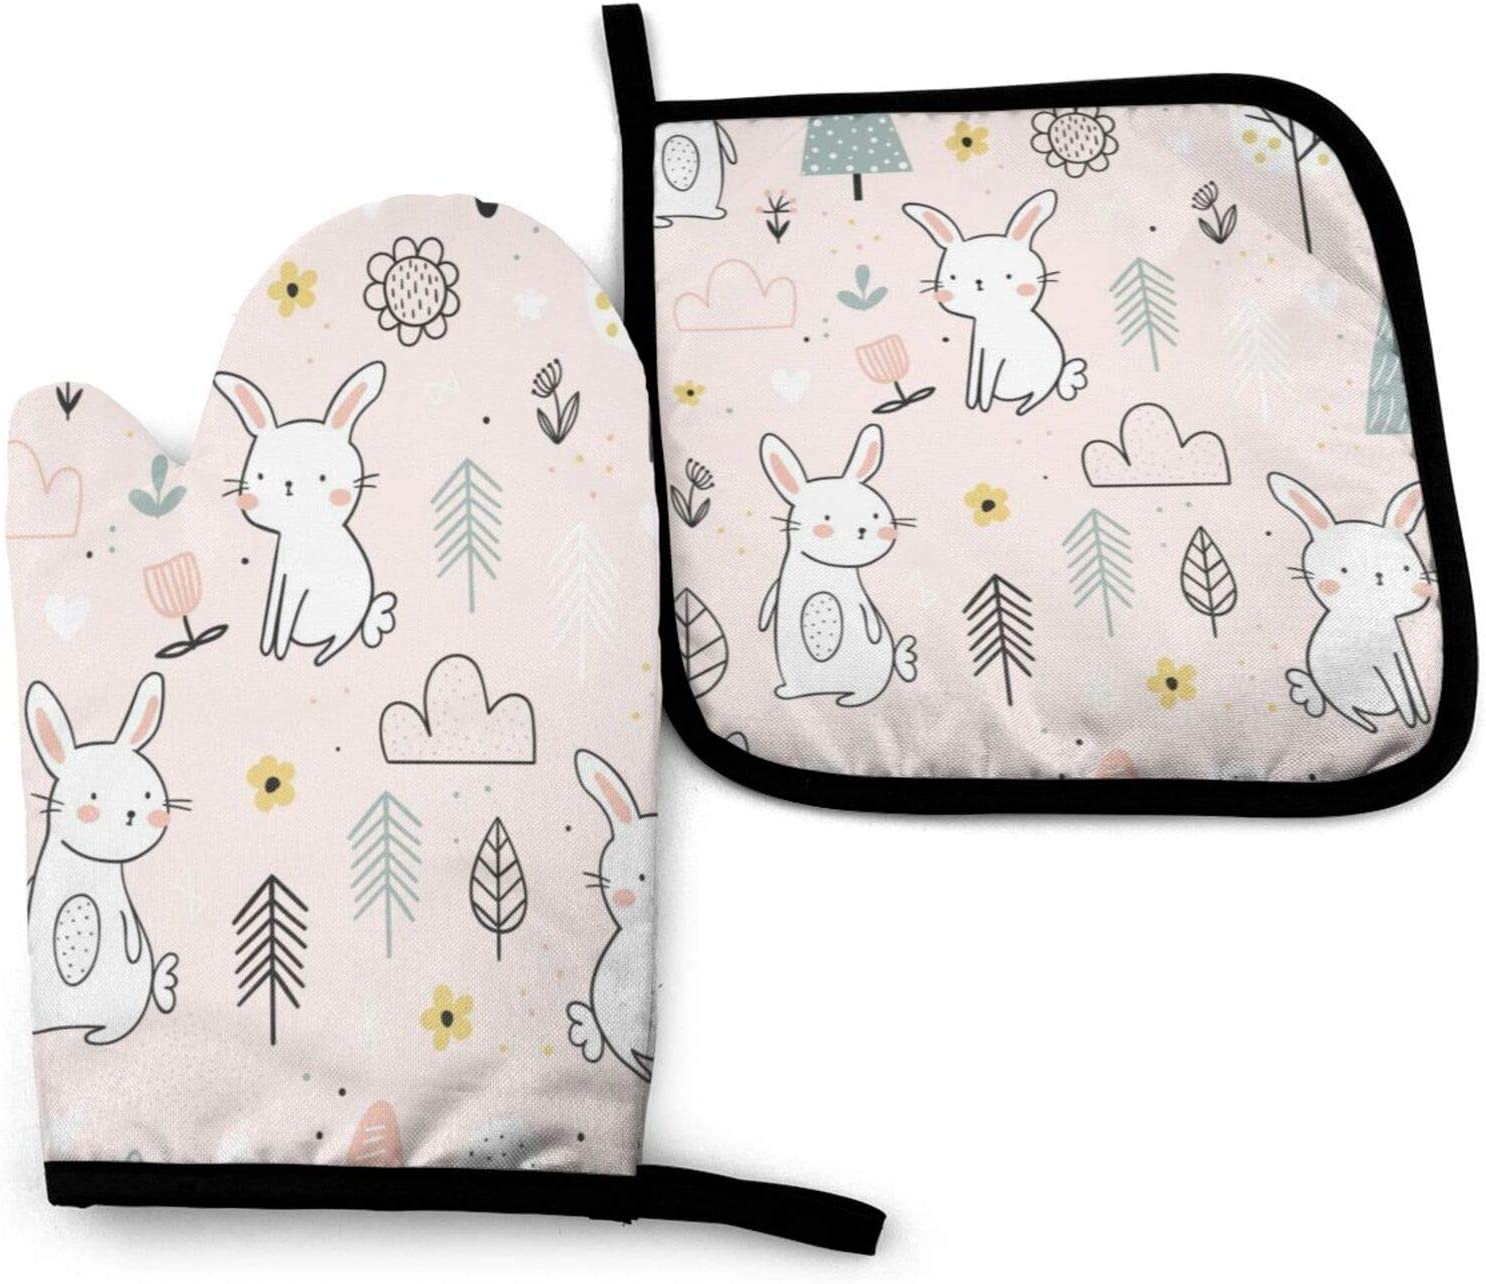 N/W Cute White Bunnies in The Forest Heat Resistant Oven Mitts Soft Cotton Lining with Non-Slip Surface for Safe BBQ Cooking Baking Grilling in Family Oven Mitt 11'' X 6.2'' and Pot Holder 8'' X 8''